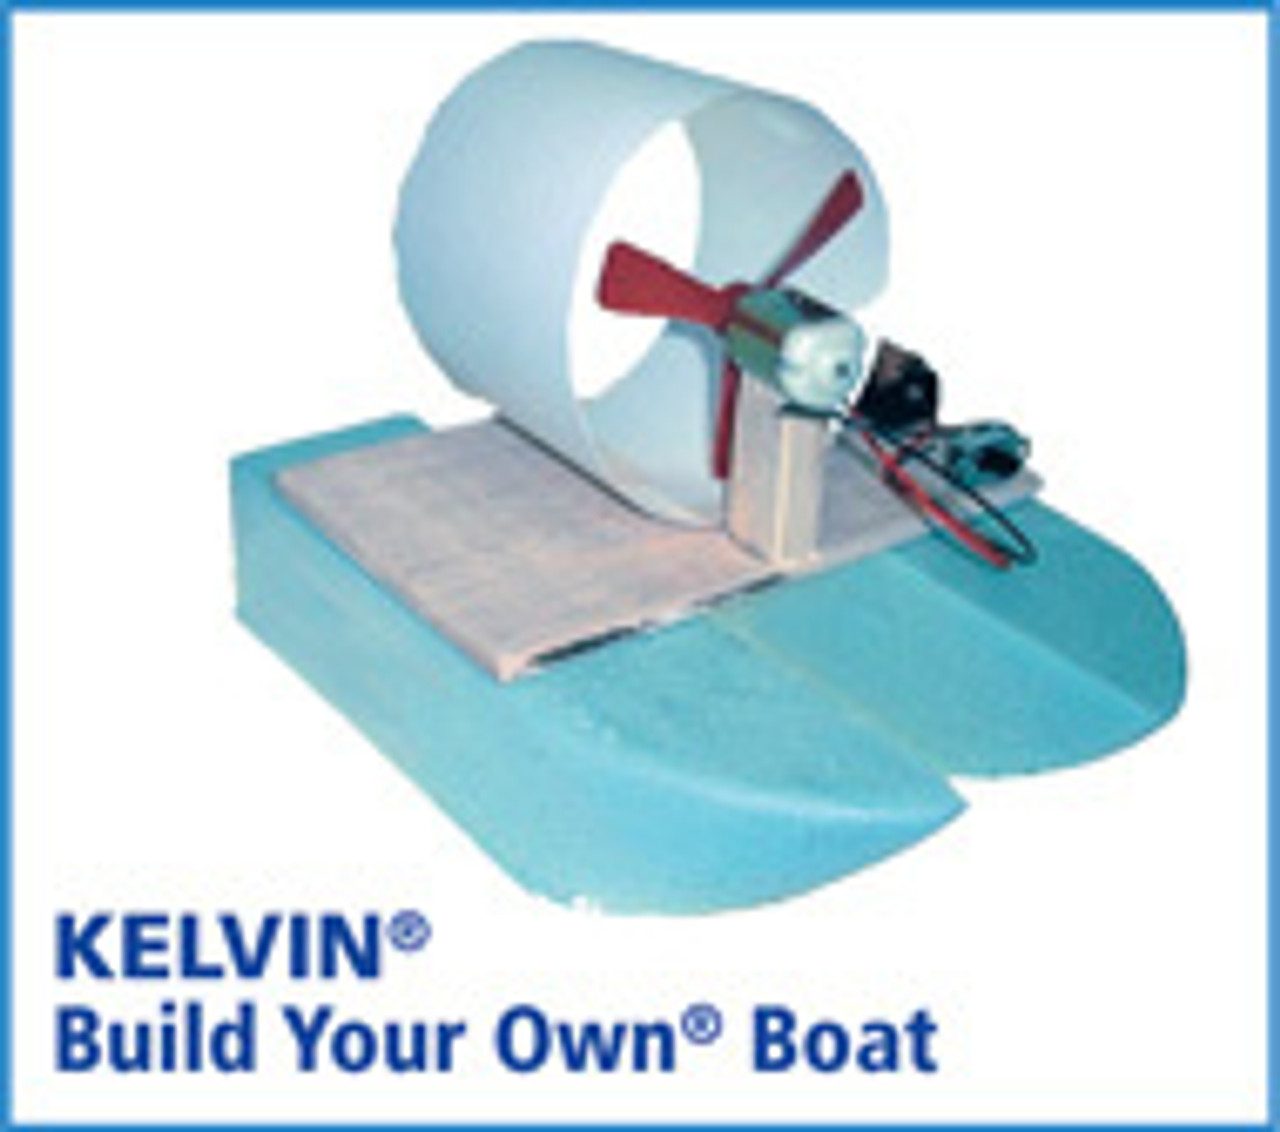 KELVIN®Build Your Own® Boat Kits